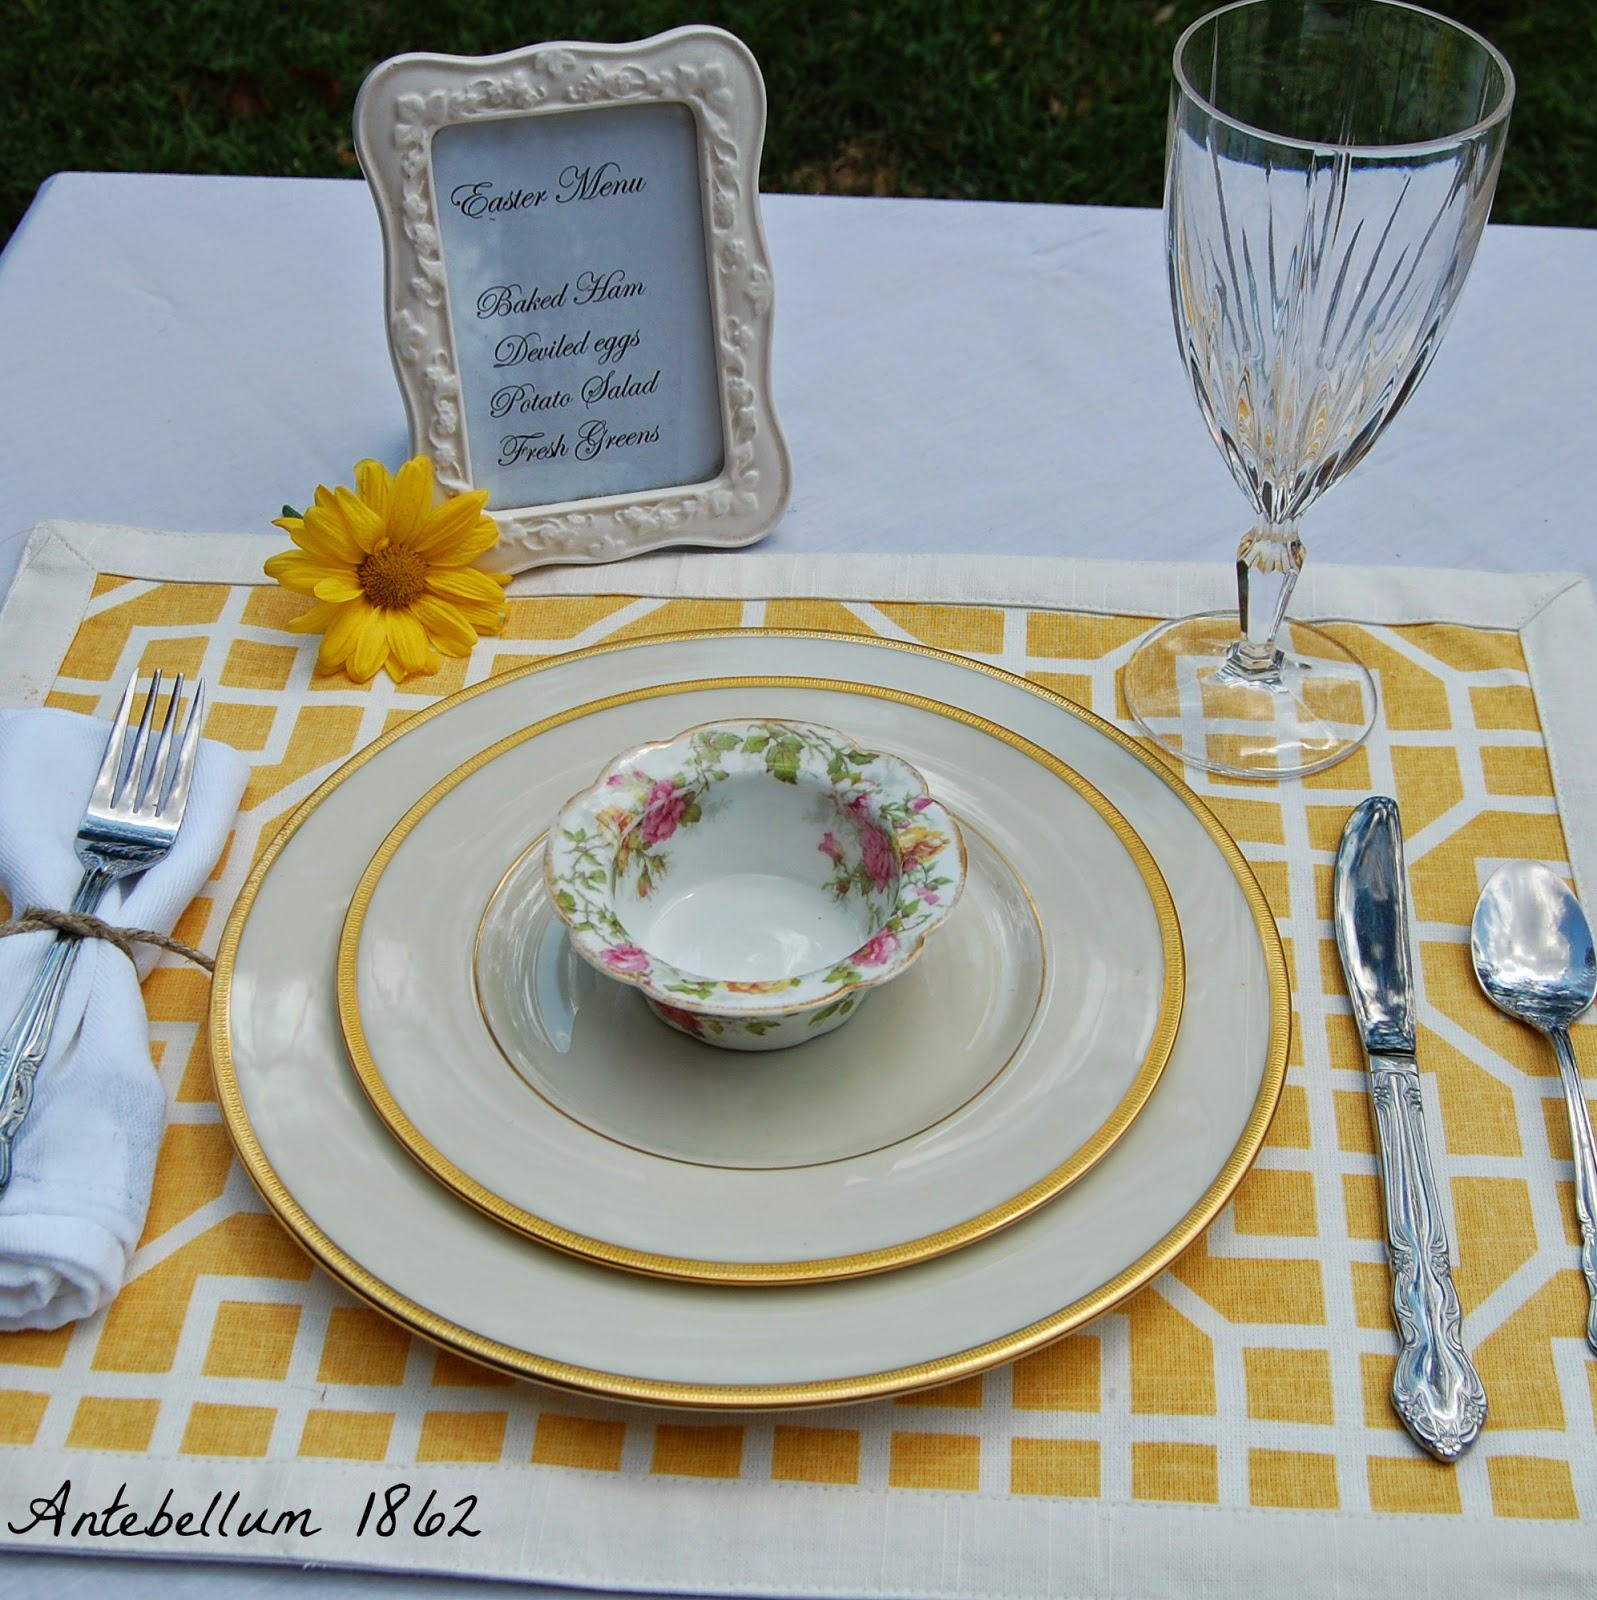 Different frames at each place setting is very southern. It makes each place setting special. & Antebellum 1862: How to Create Simple Table Settings for Easter